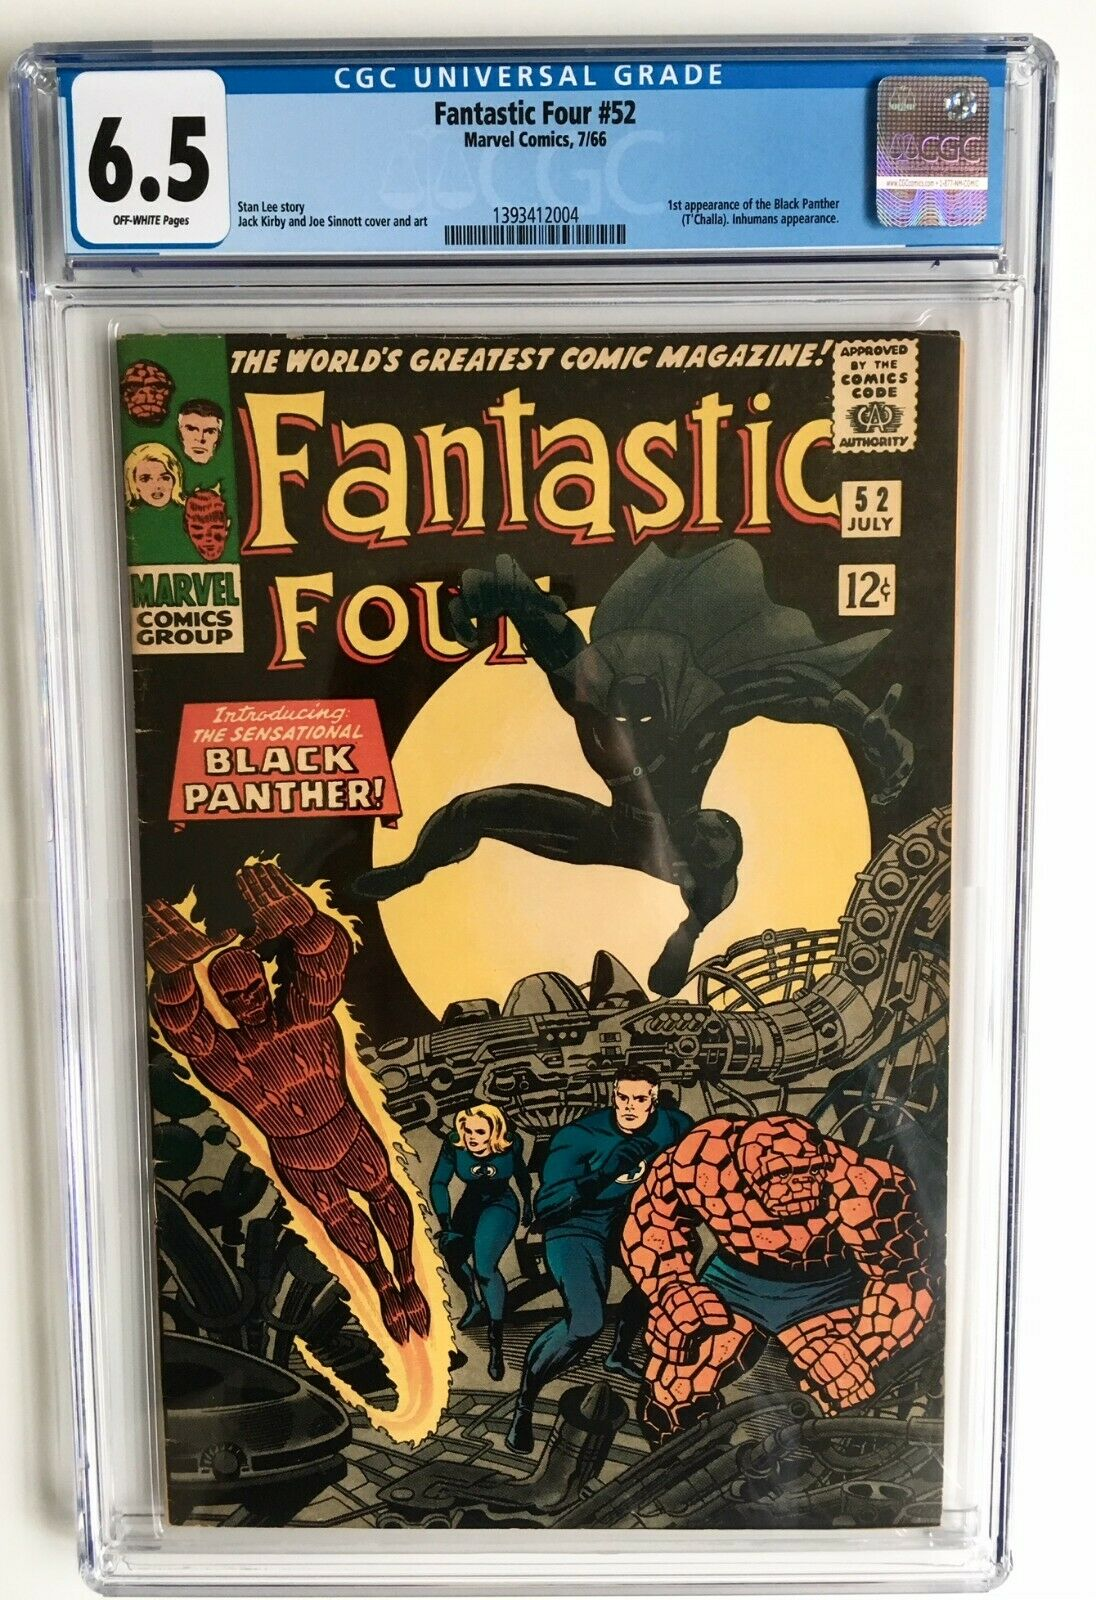 FANTASTIC FOUR # 52 CGC 6.5 1st Black Panther, Stan Lee Avengers endgame 48